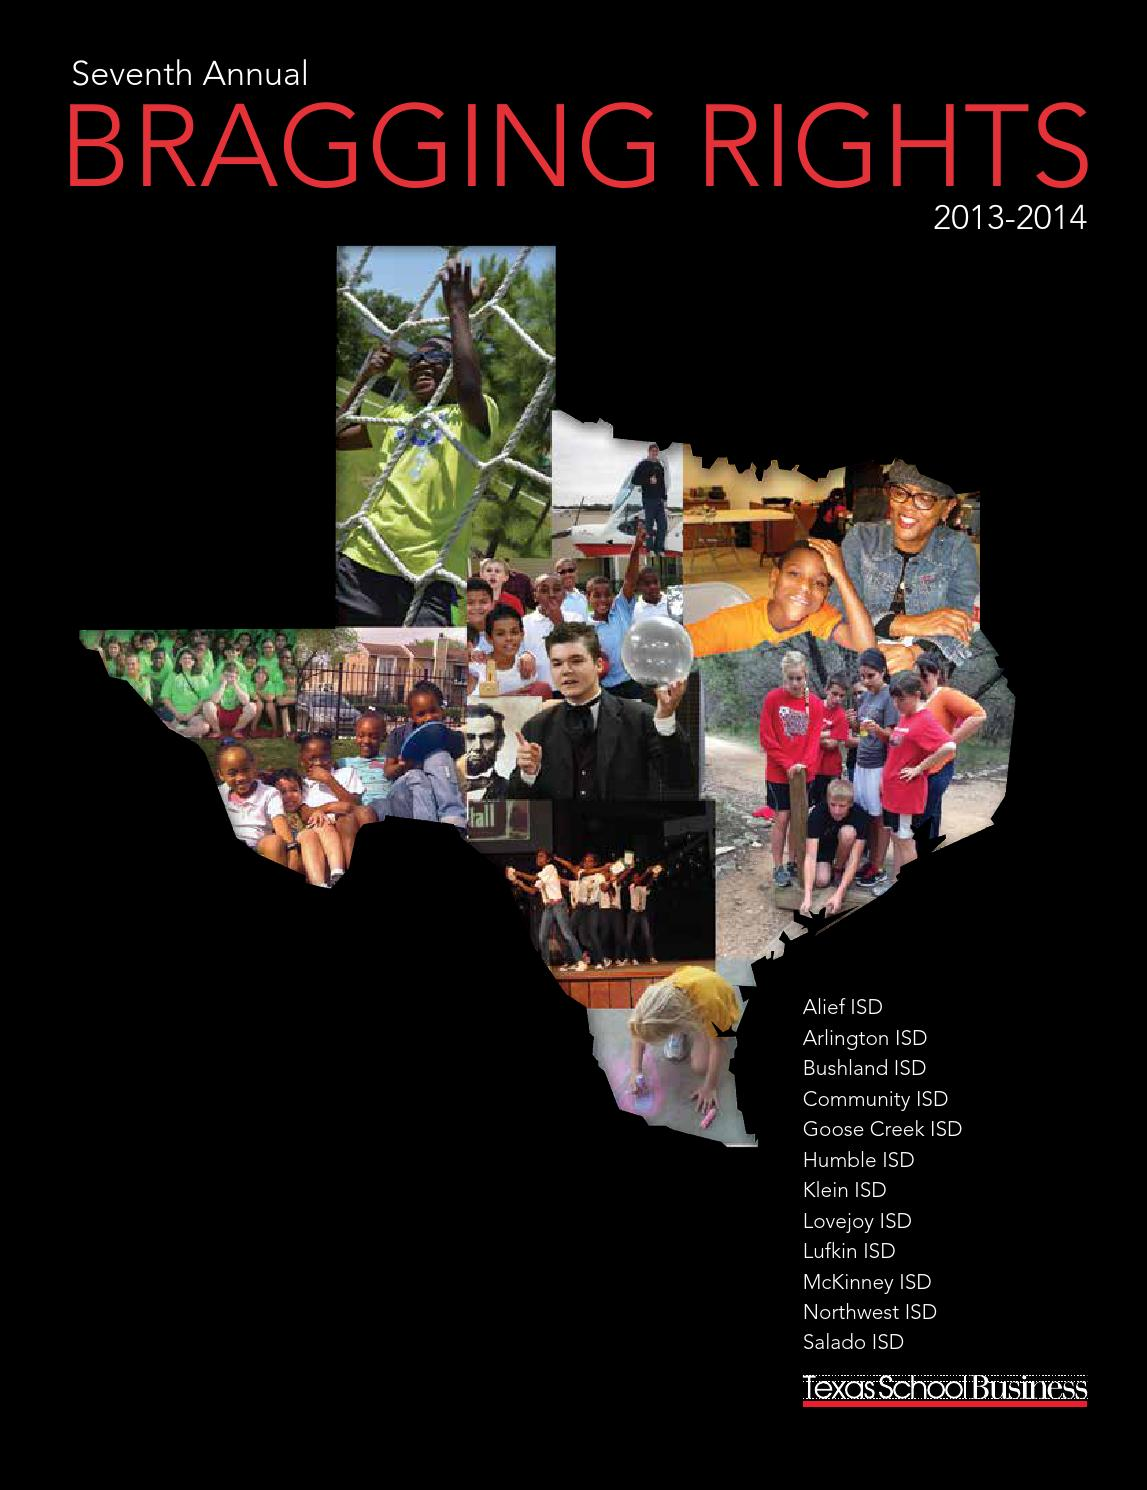 Seventh Annual Bragging Rights 2013 2014 By Texas Association Of School Administrators Issuu